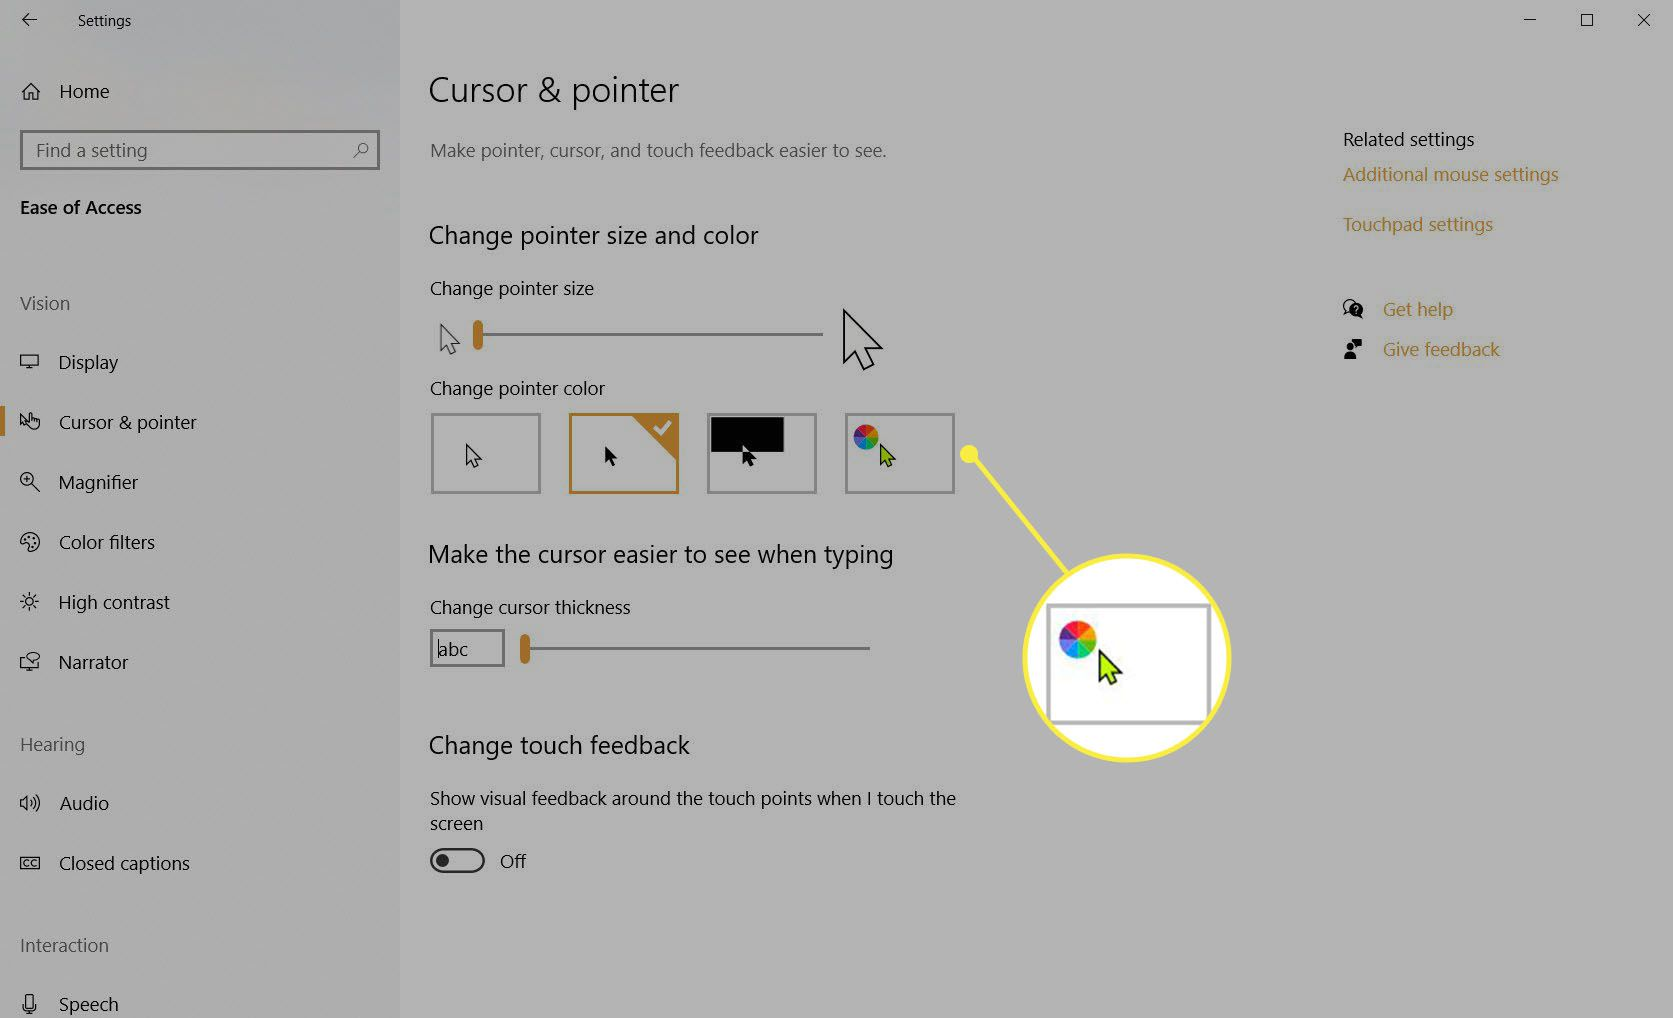 Change pointer size and color with the sliders